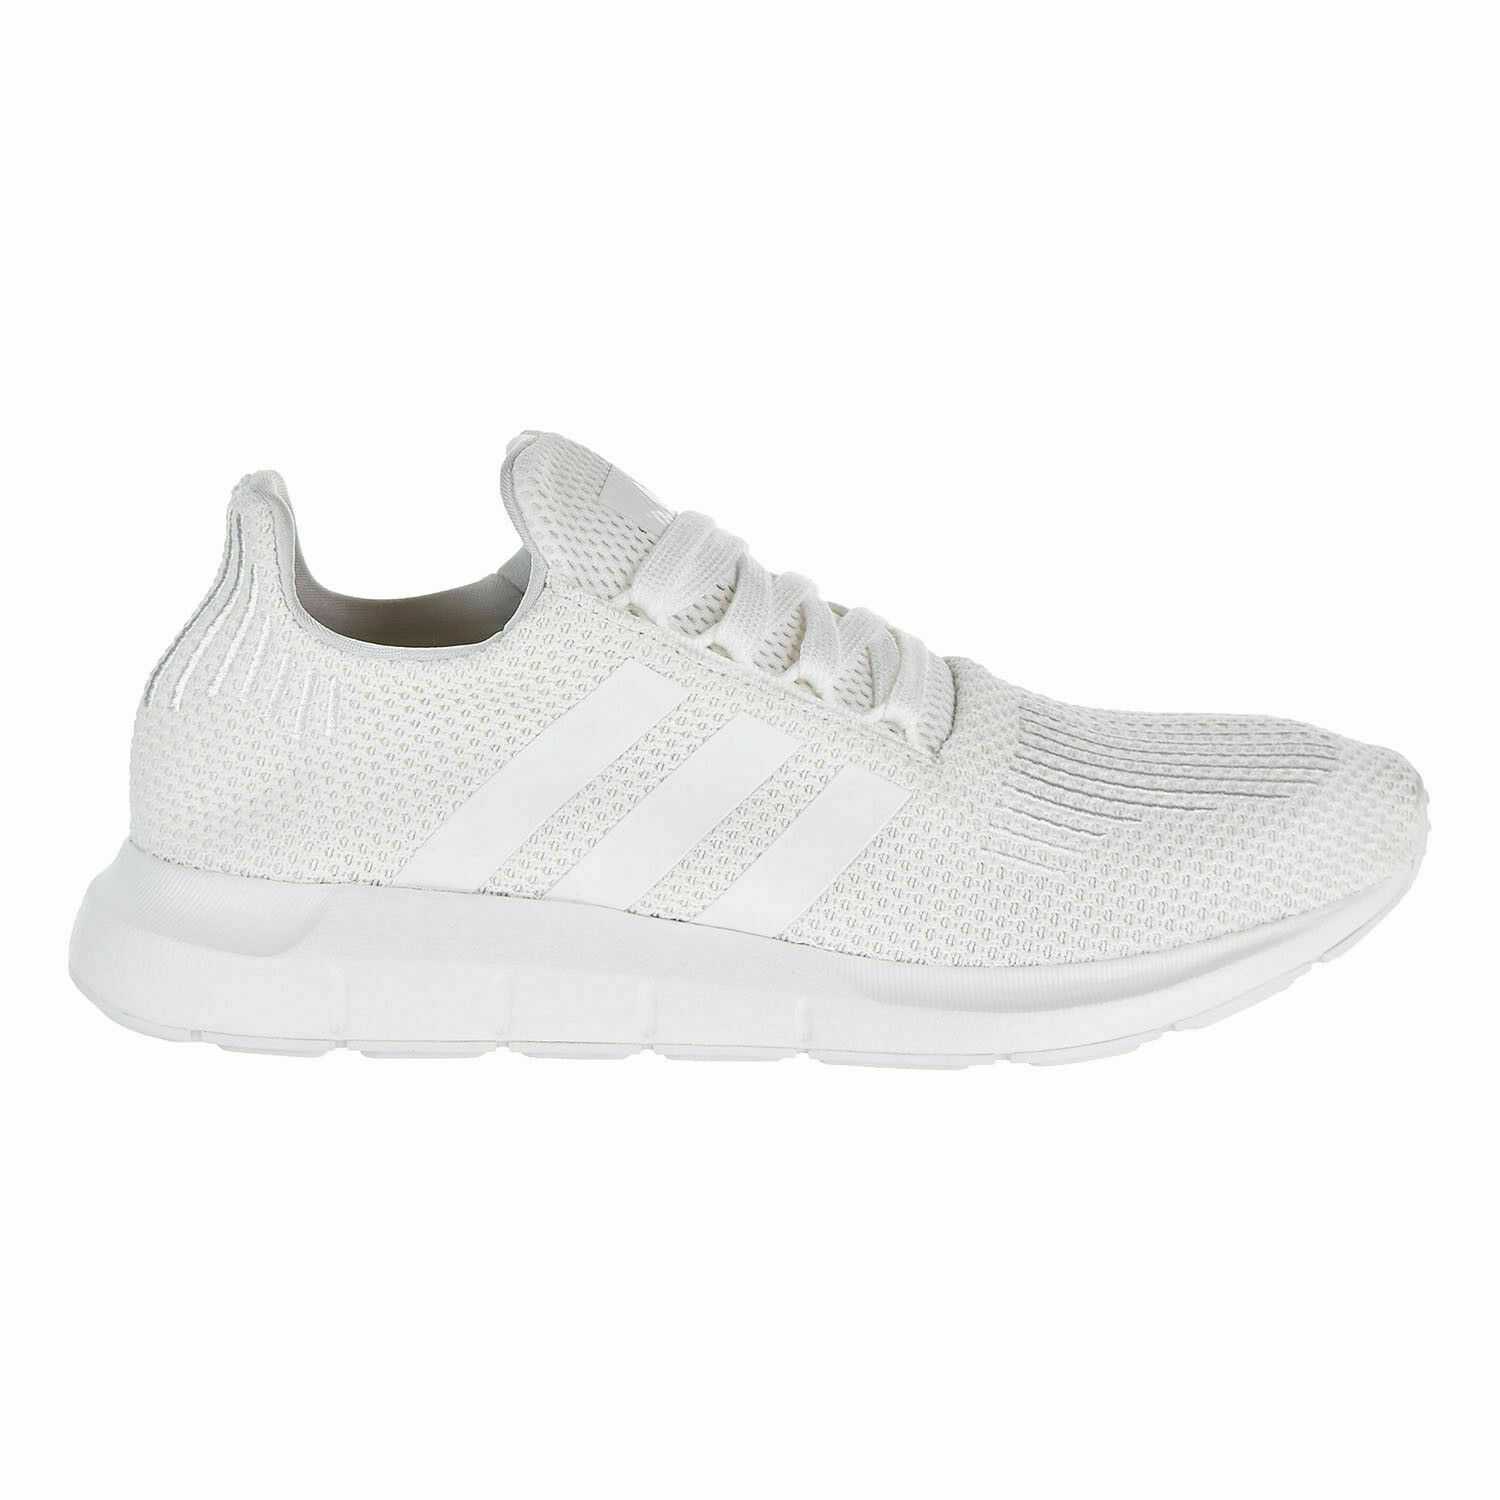 B37725 Men's Adidas Swift Run Running shoes Footwear White All White Size 7-13